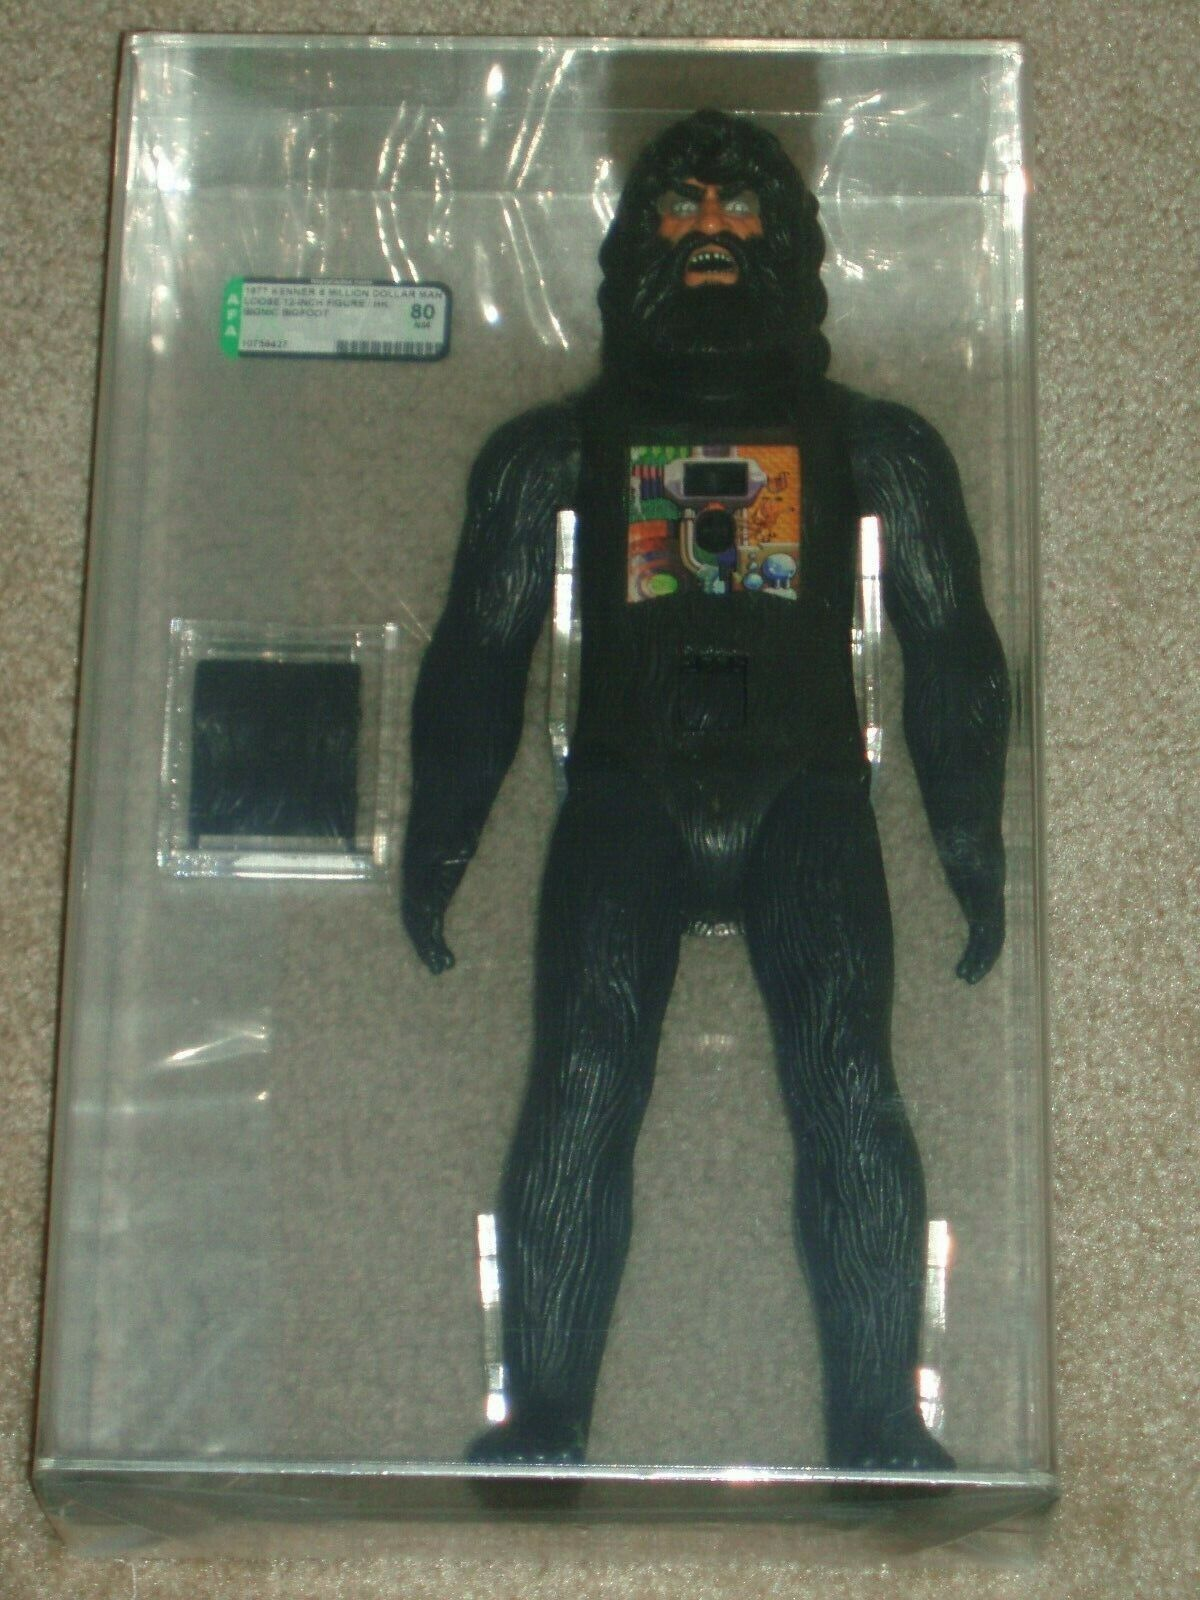 1977 autoridad Kenner Figura de Acción 80 Bionic Bigfoot 12 pulgadas figura de acción Six Million Dollar Man